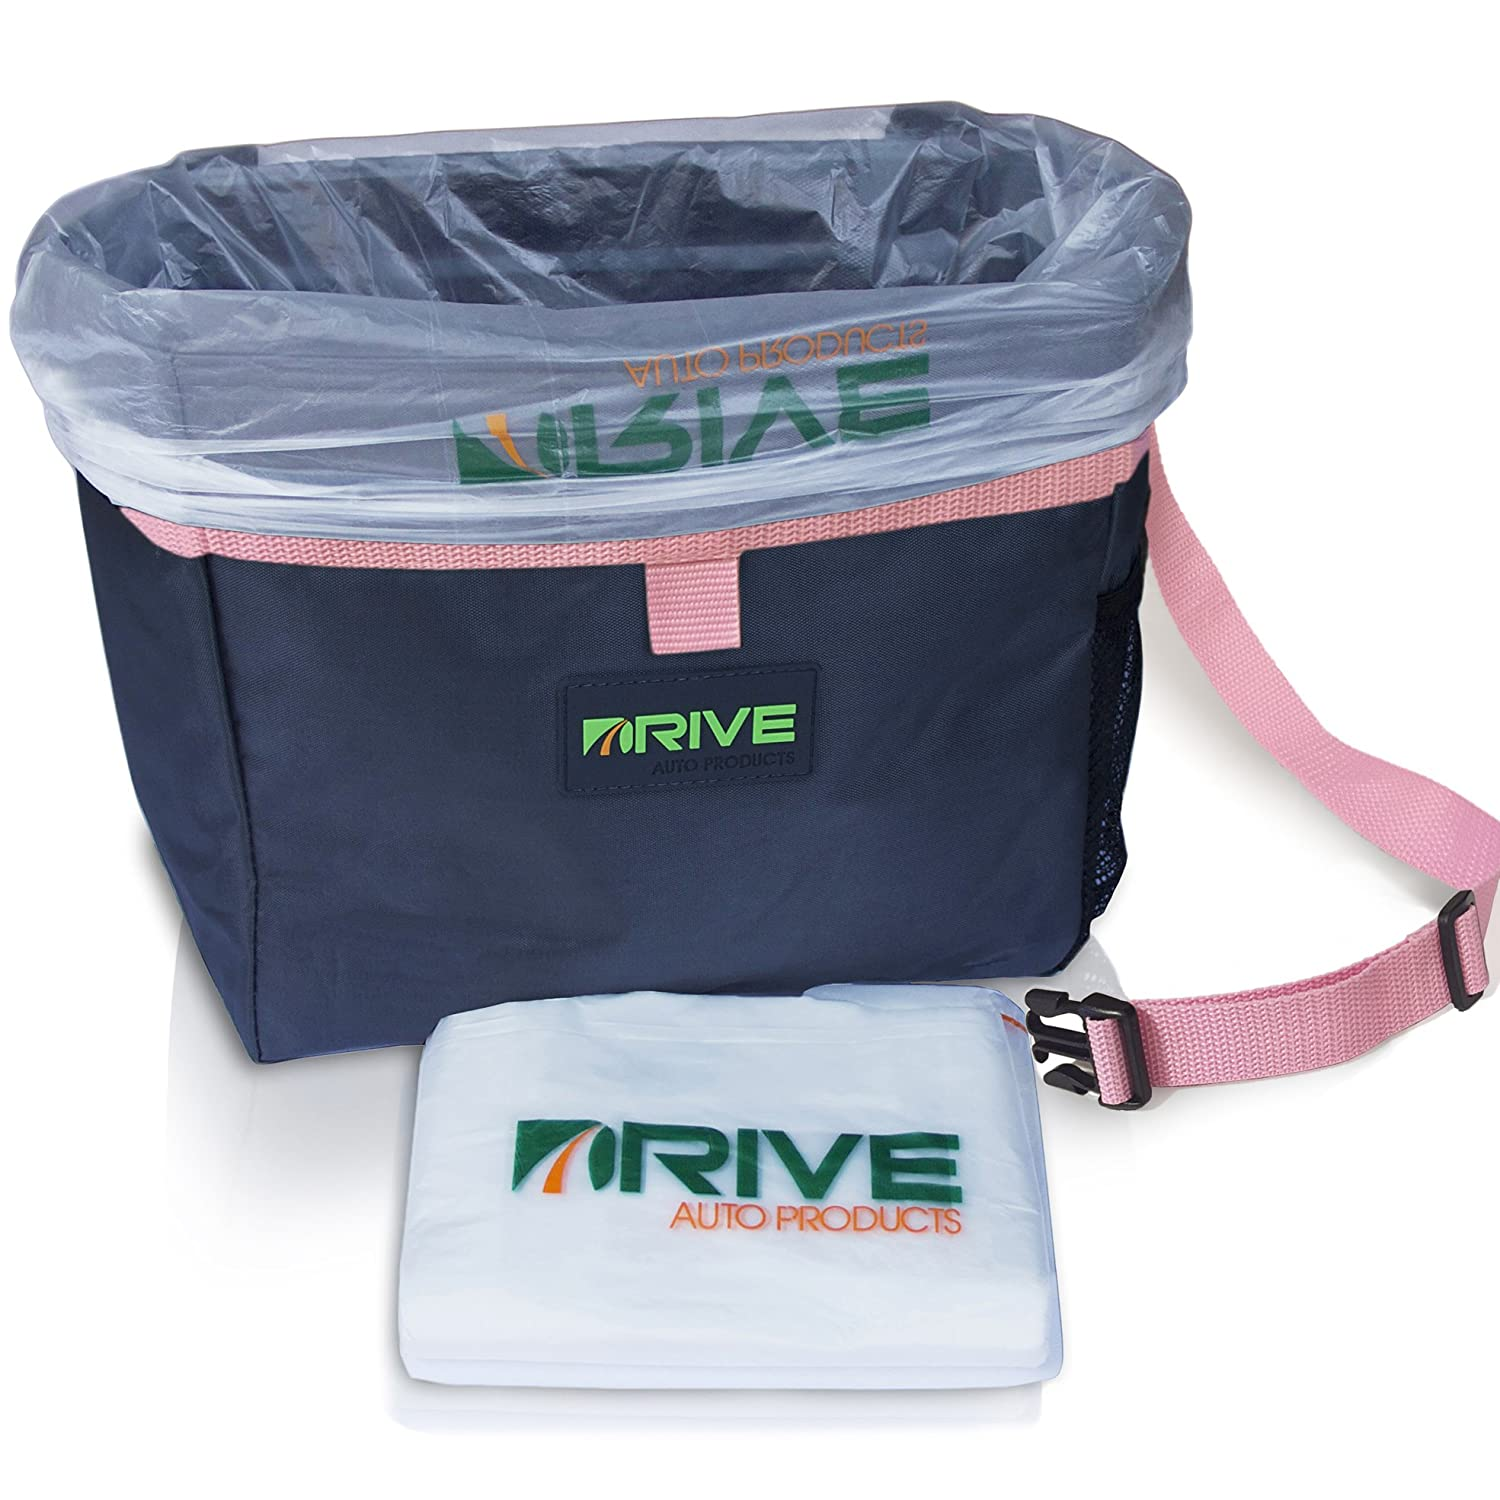 DRIVE Car Bin (Pink Strap) - Best Auto Trash Bag for Rubbish, Extra Waste Basket Liners - Hanging Recycle Garbage Can is Universal, Waterproof Organizer Makes a Great Drink Cooler & Road Trip Gift Drive Auto Products 731236562634_PK